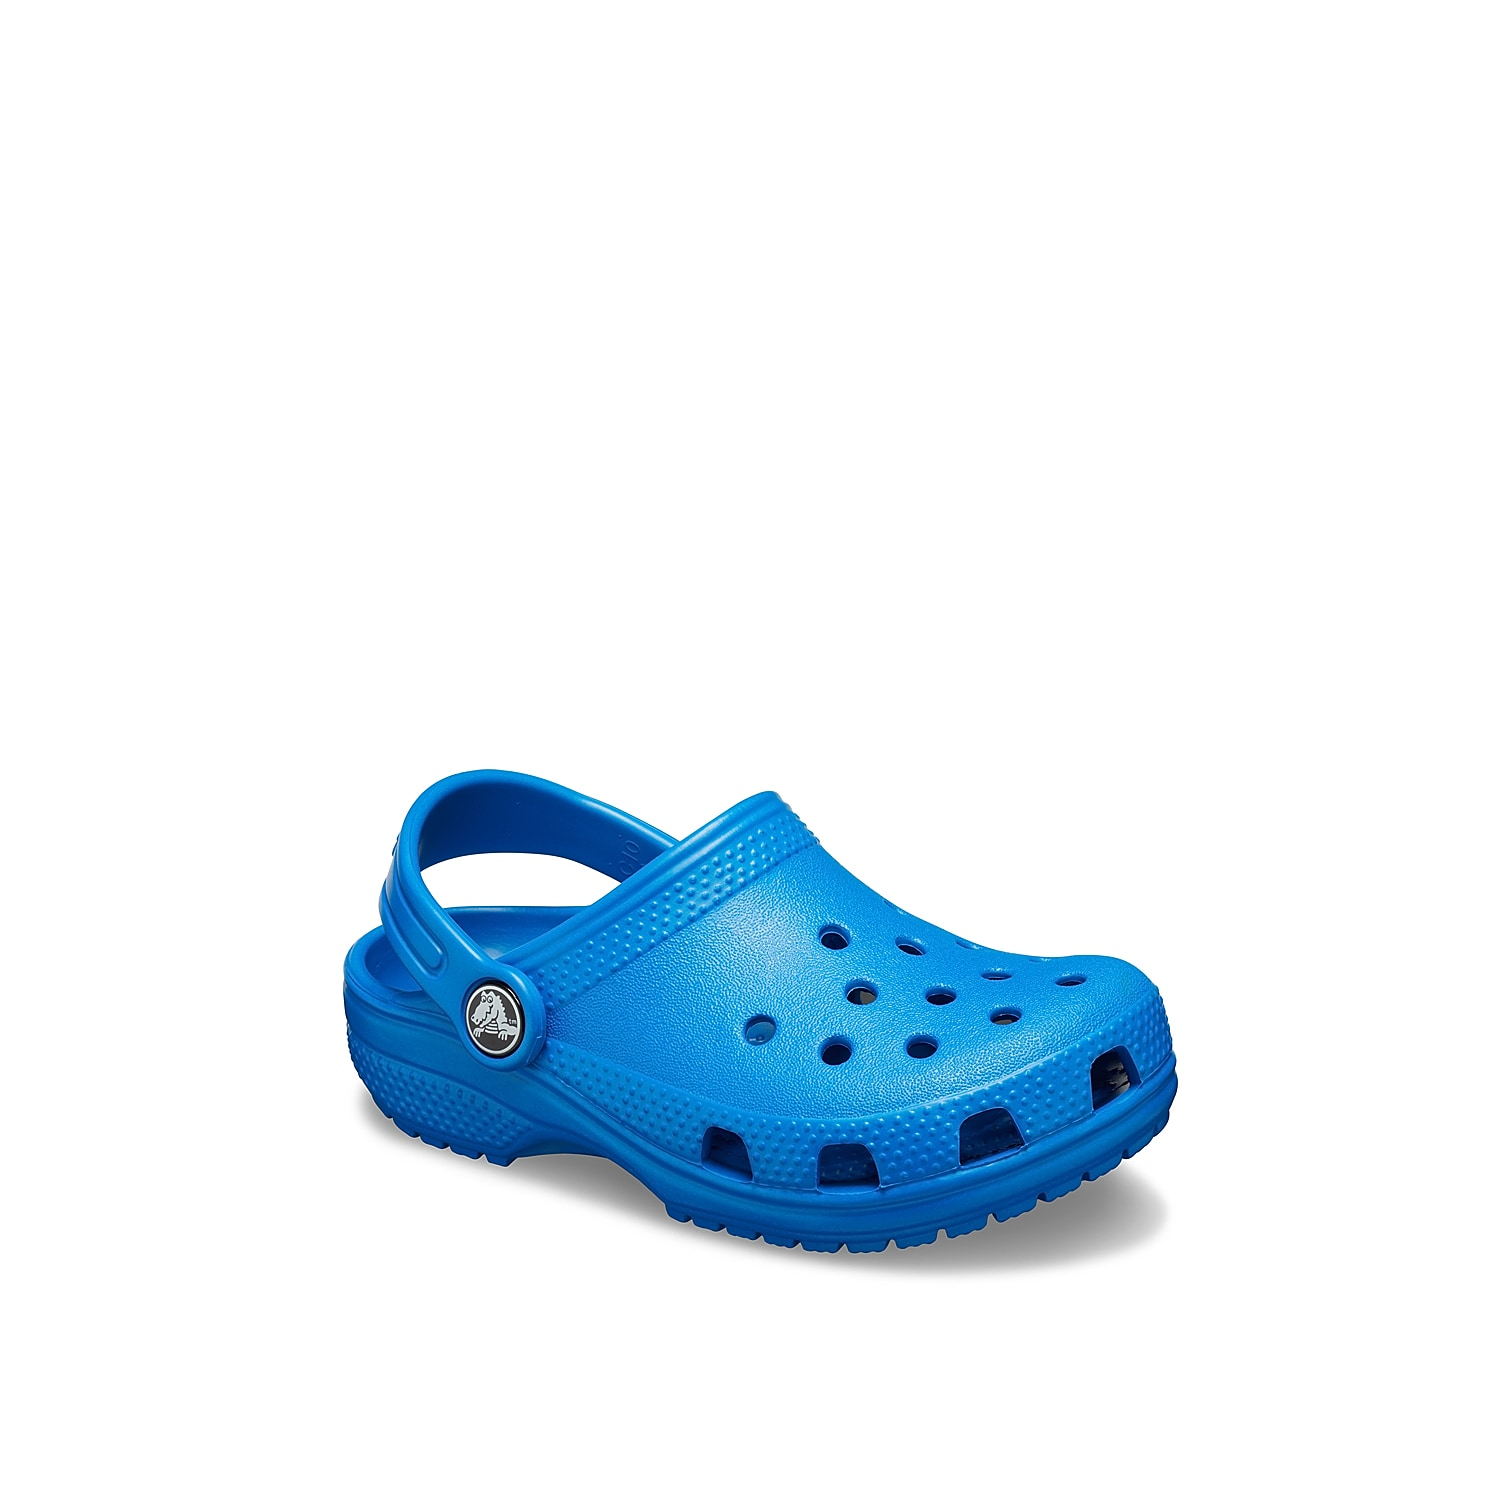 The original clog that started it all! The Classic clog from Crocs features a lightweight design and cushioned foam footbed that your little one will love. Not sure which size to order? Clickhereto check out our Kids' Measuring Guide! For more helpful tips and sizing FAQs, clickhere.